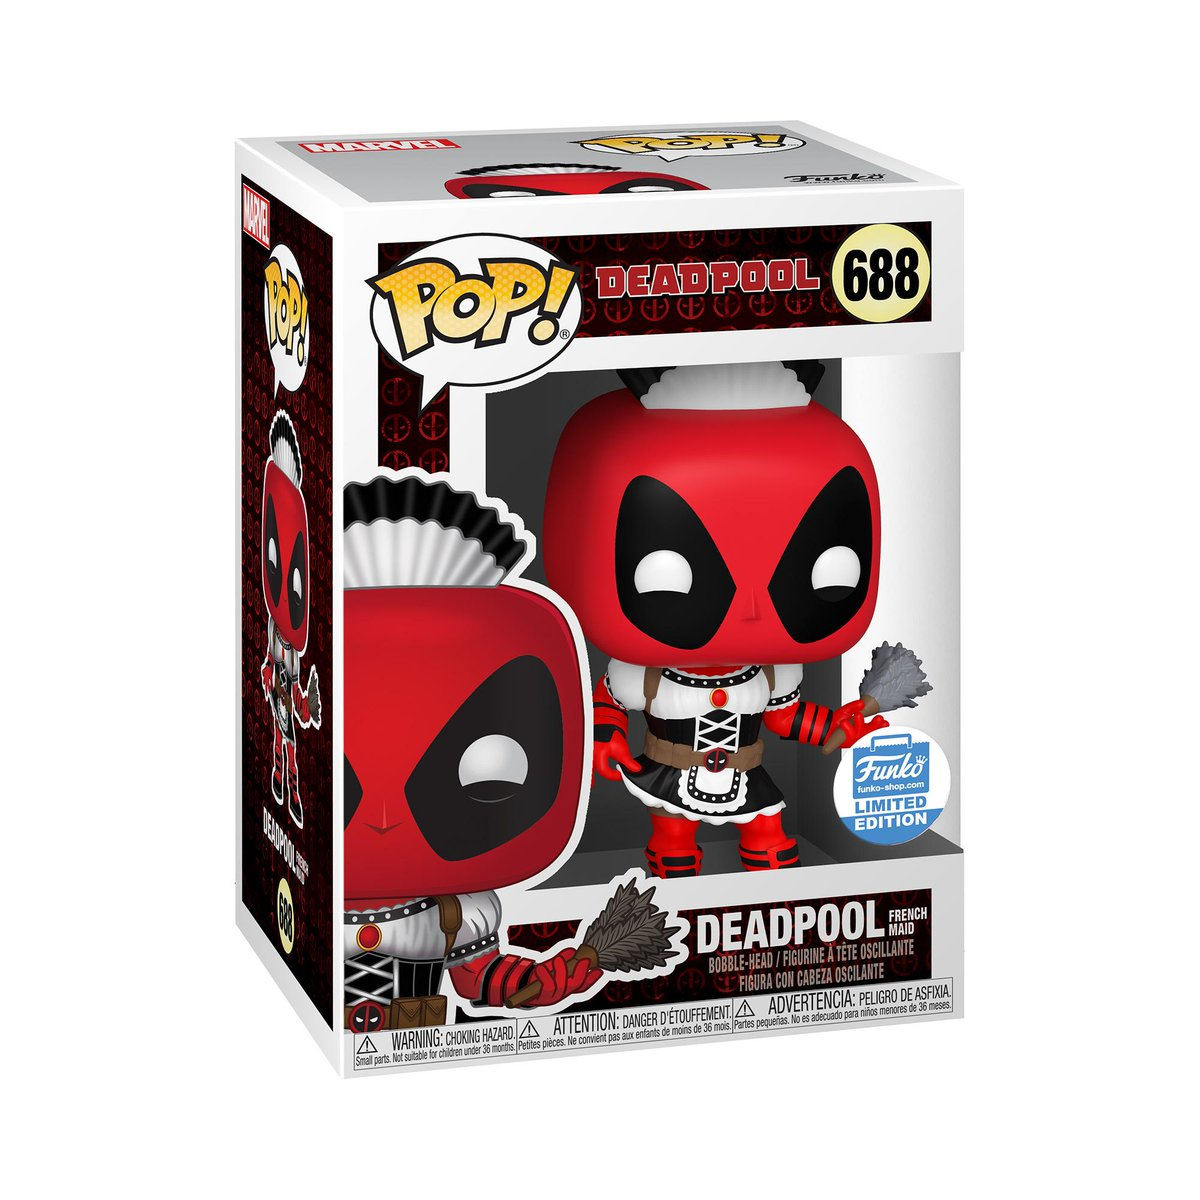 RT & follow @OriginalFunko for the chance to WIN this Funko exclusive Deadpool (French Maid) Pop! #Funko #FunkoPop #FunkoGiveaway #Deadpool